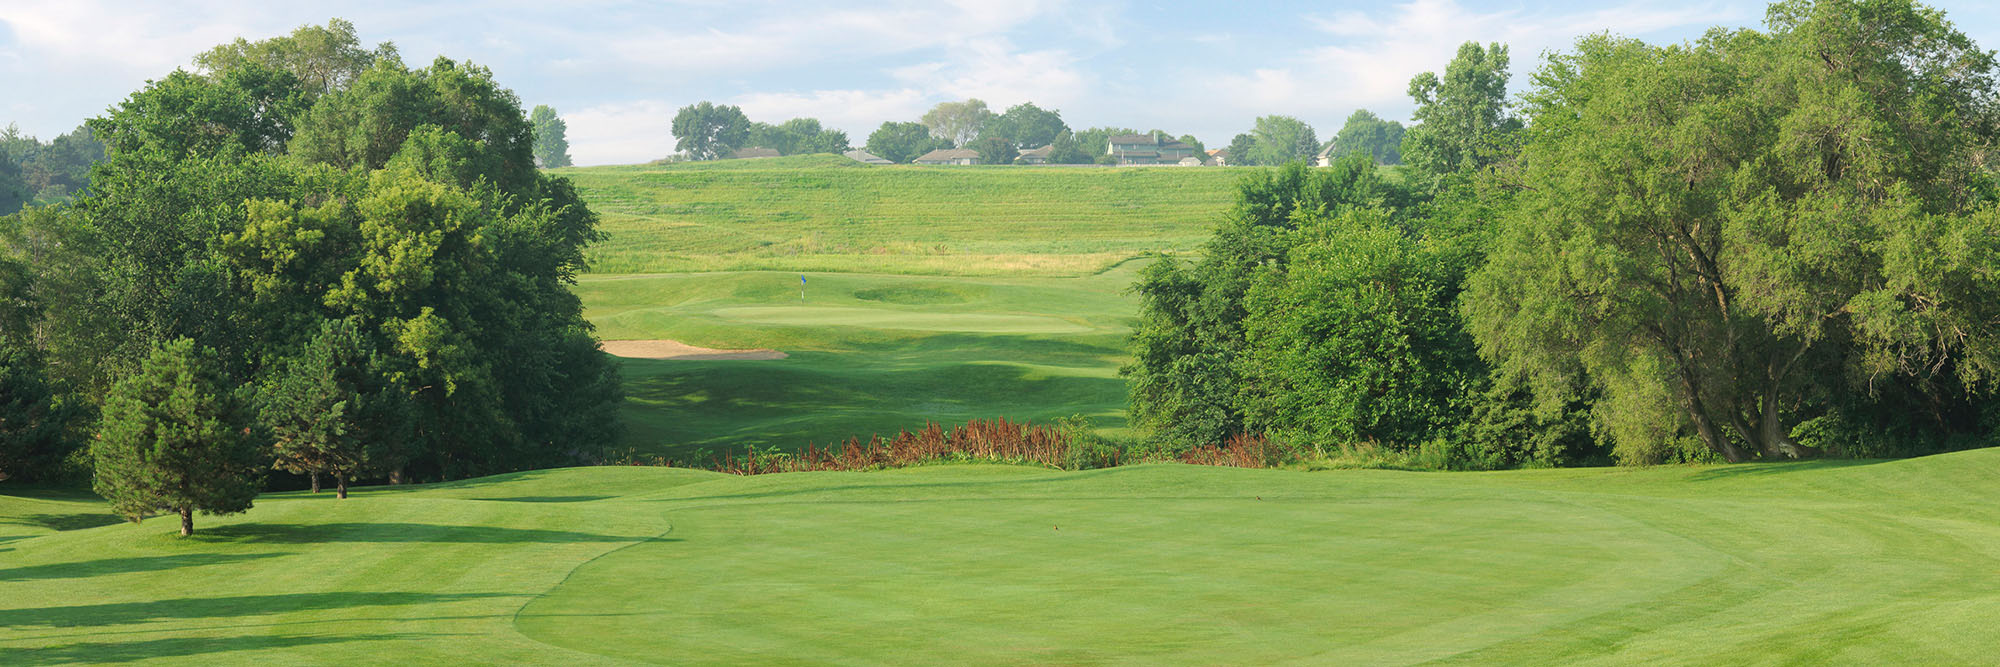 Golf Course Image - Pacific Springs No. 1